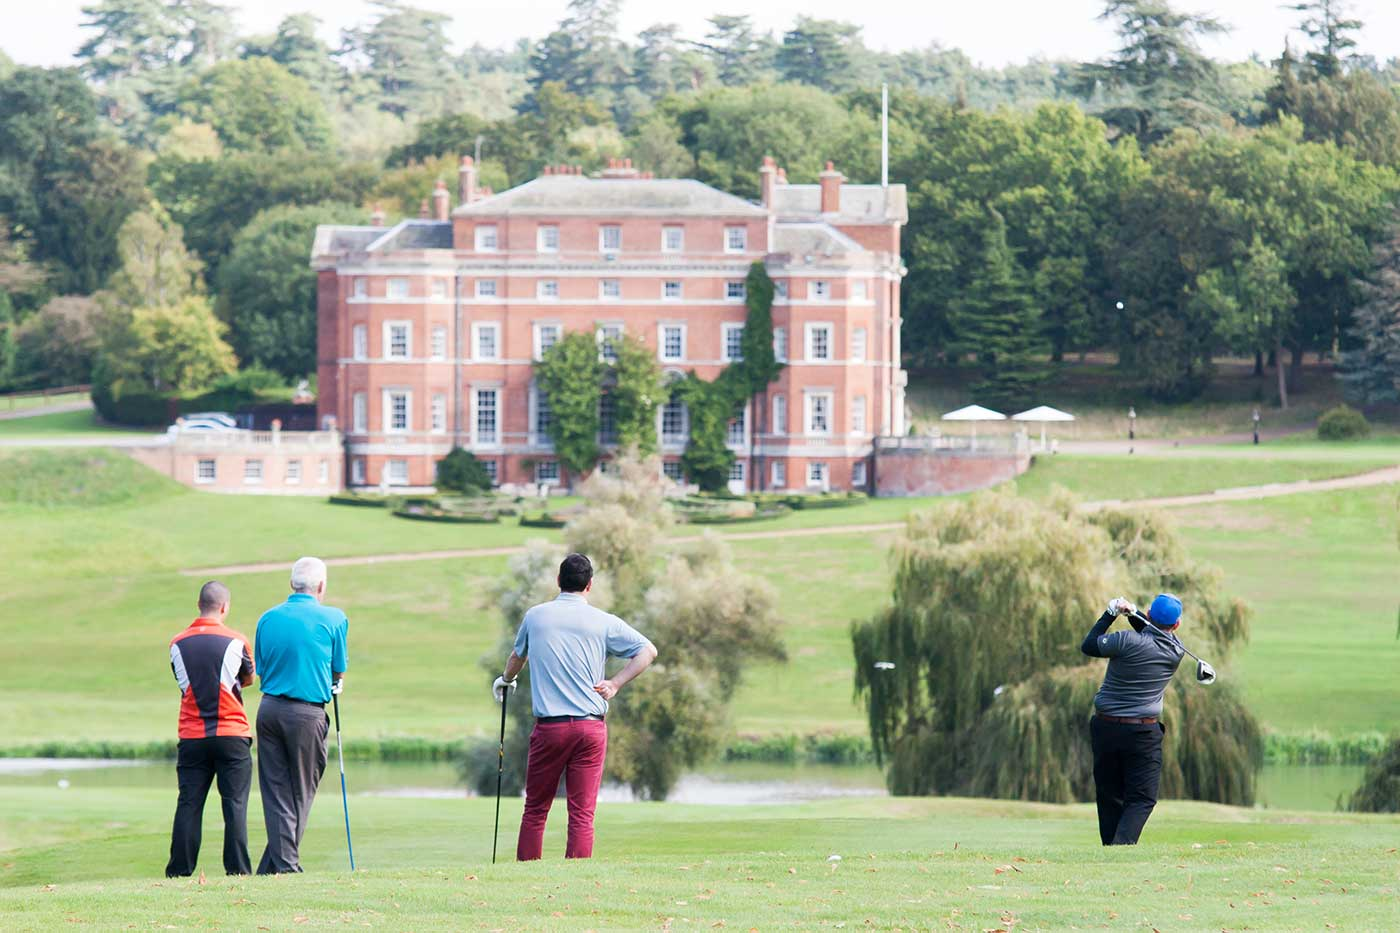 Furniture-Makers-golf-day-at-Brocket-Hall.jpg